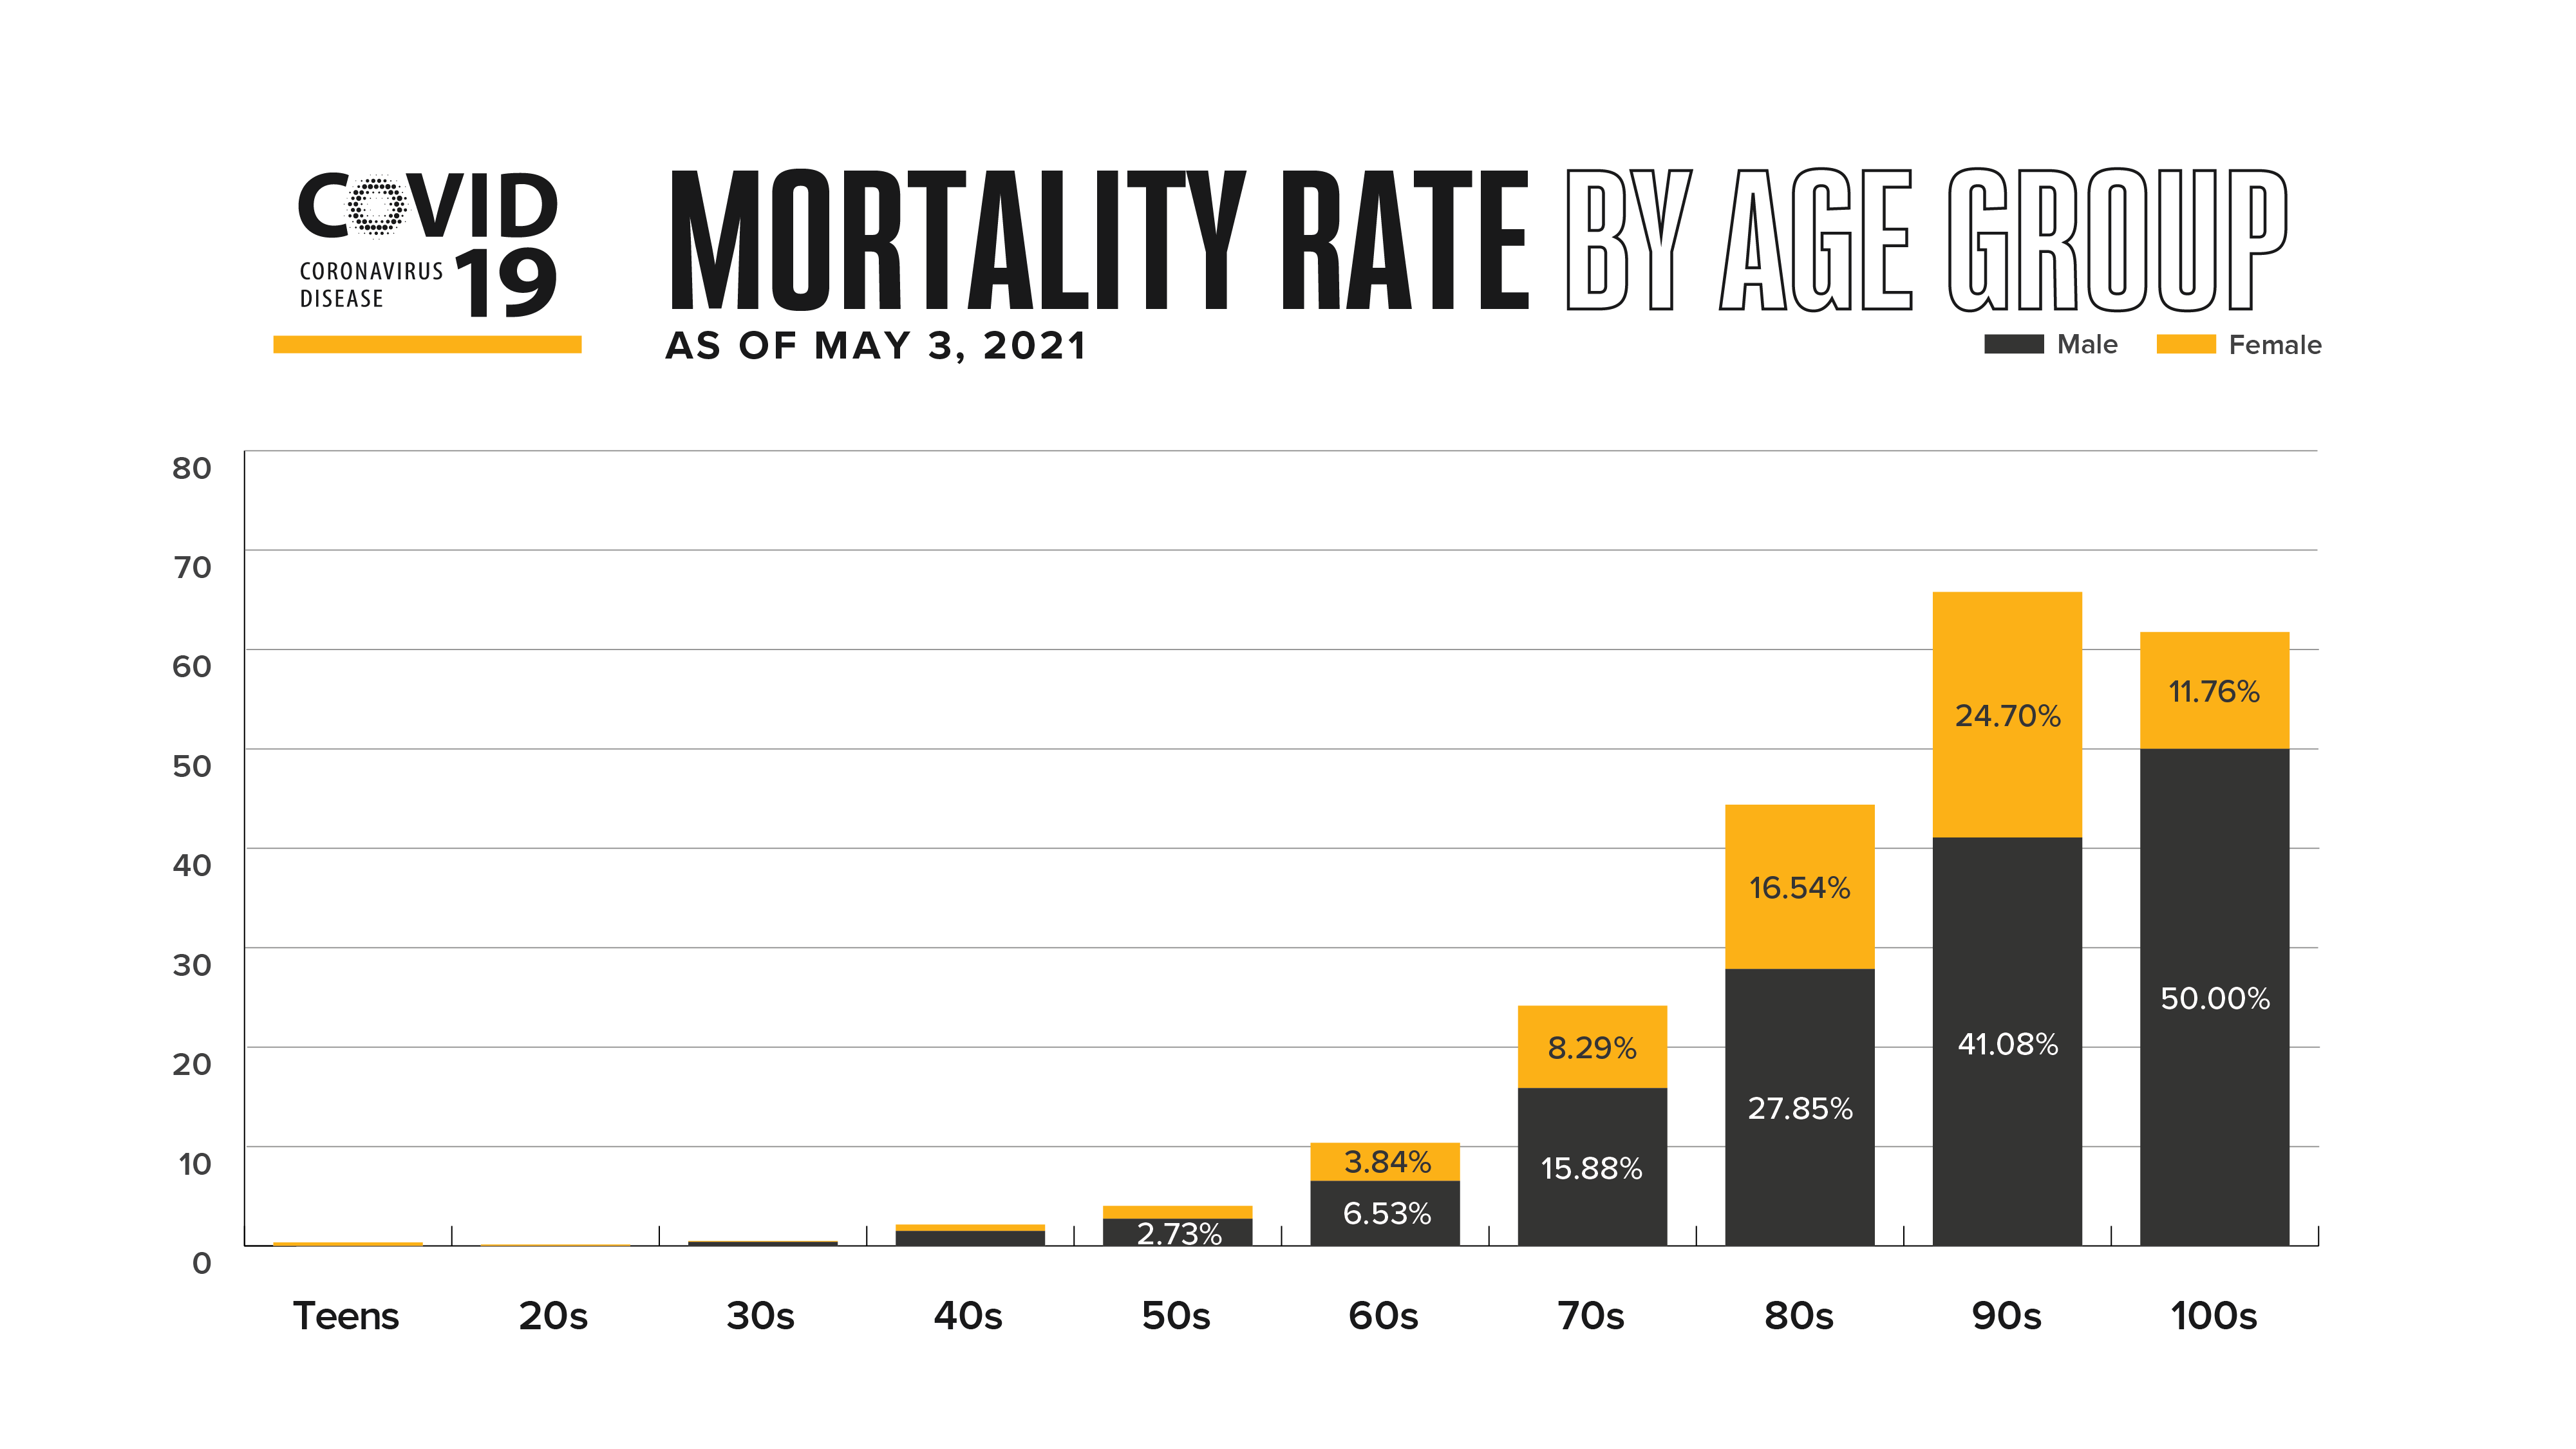 Mortality Rate by Age Group